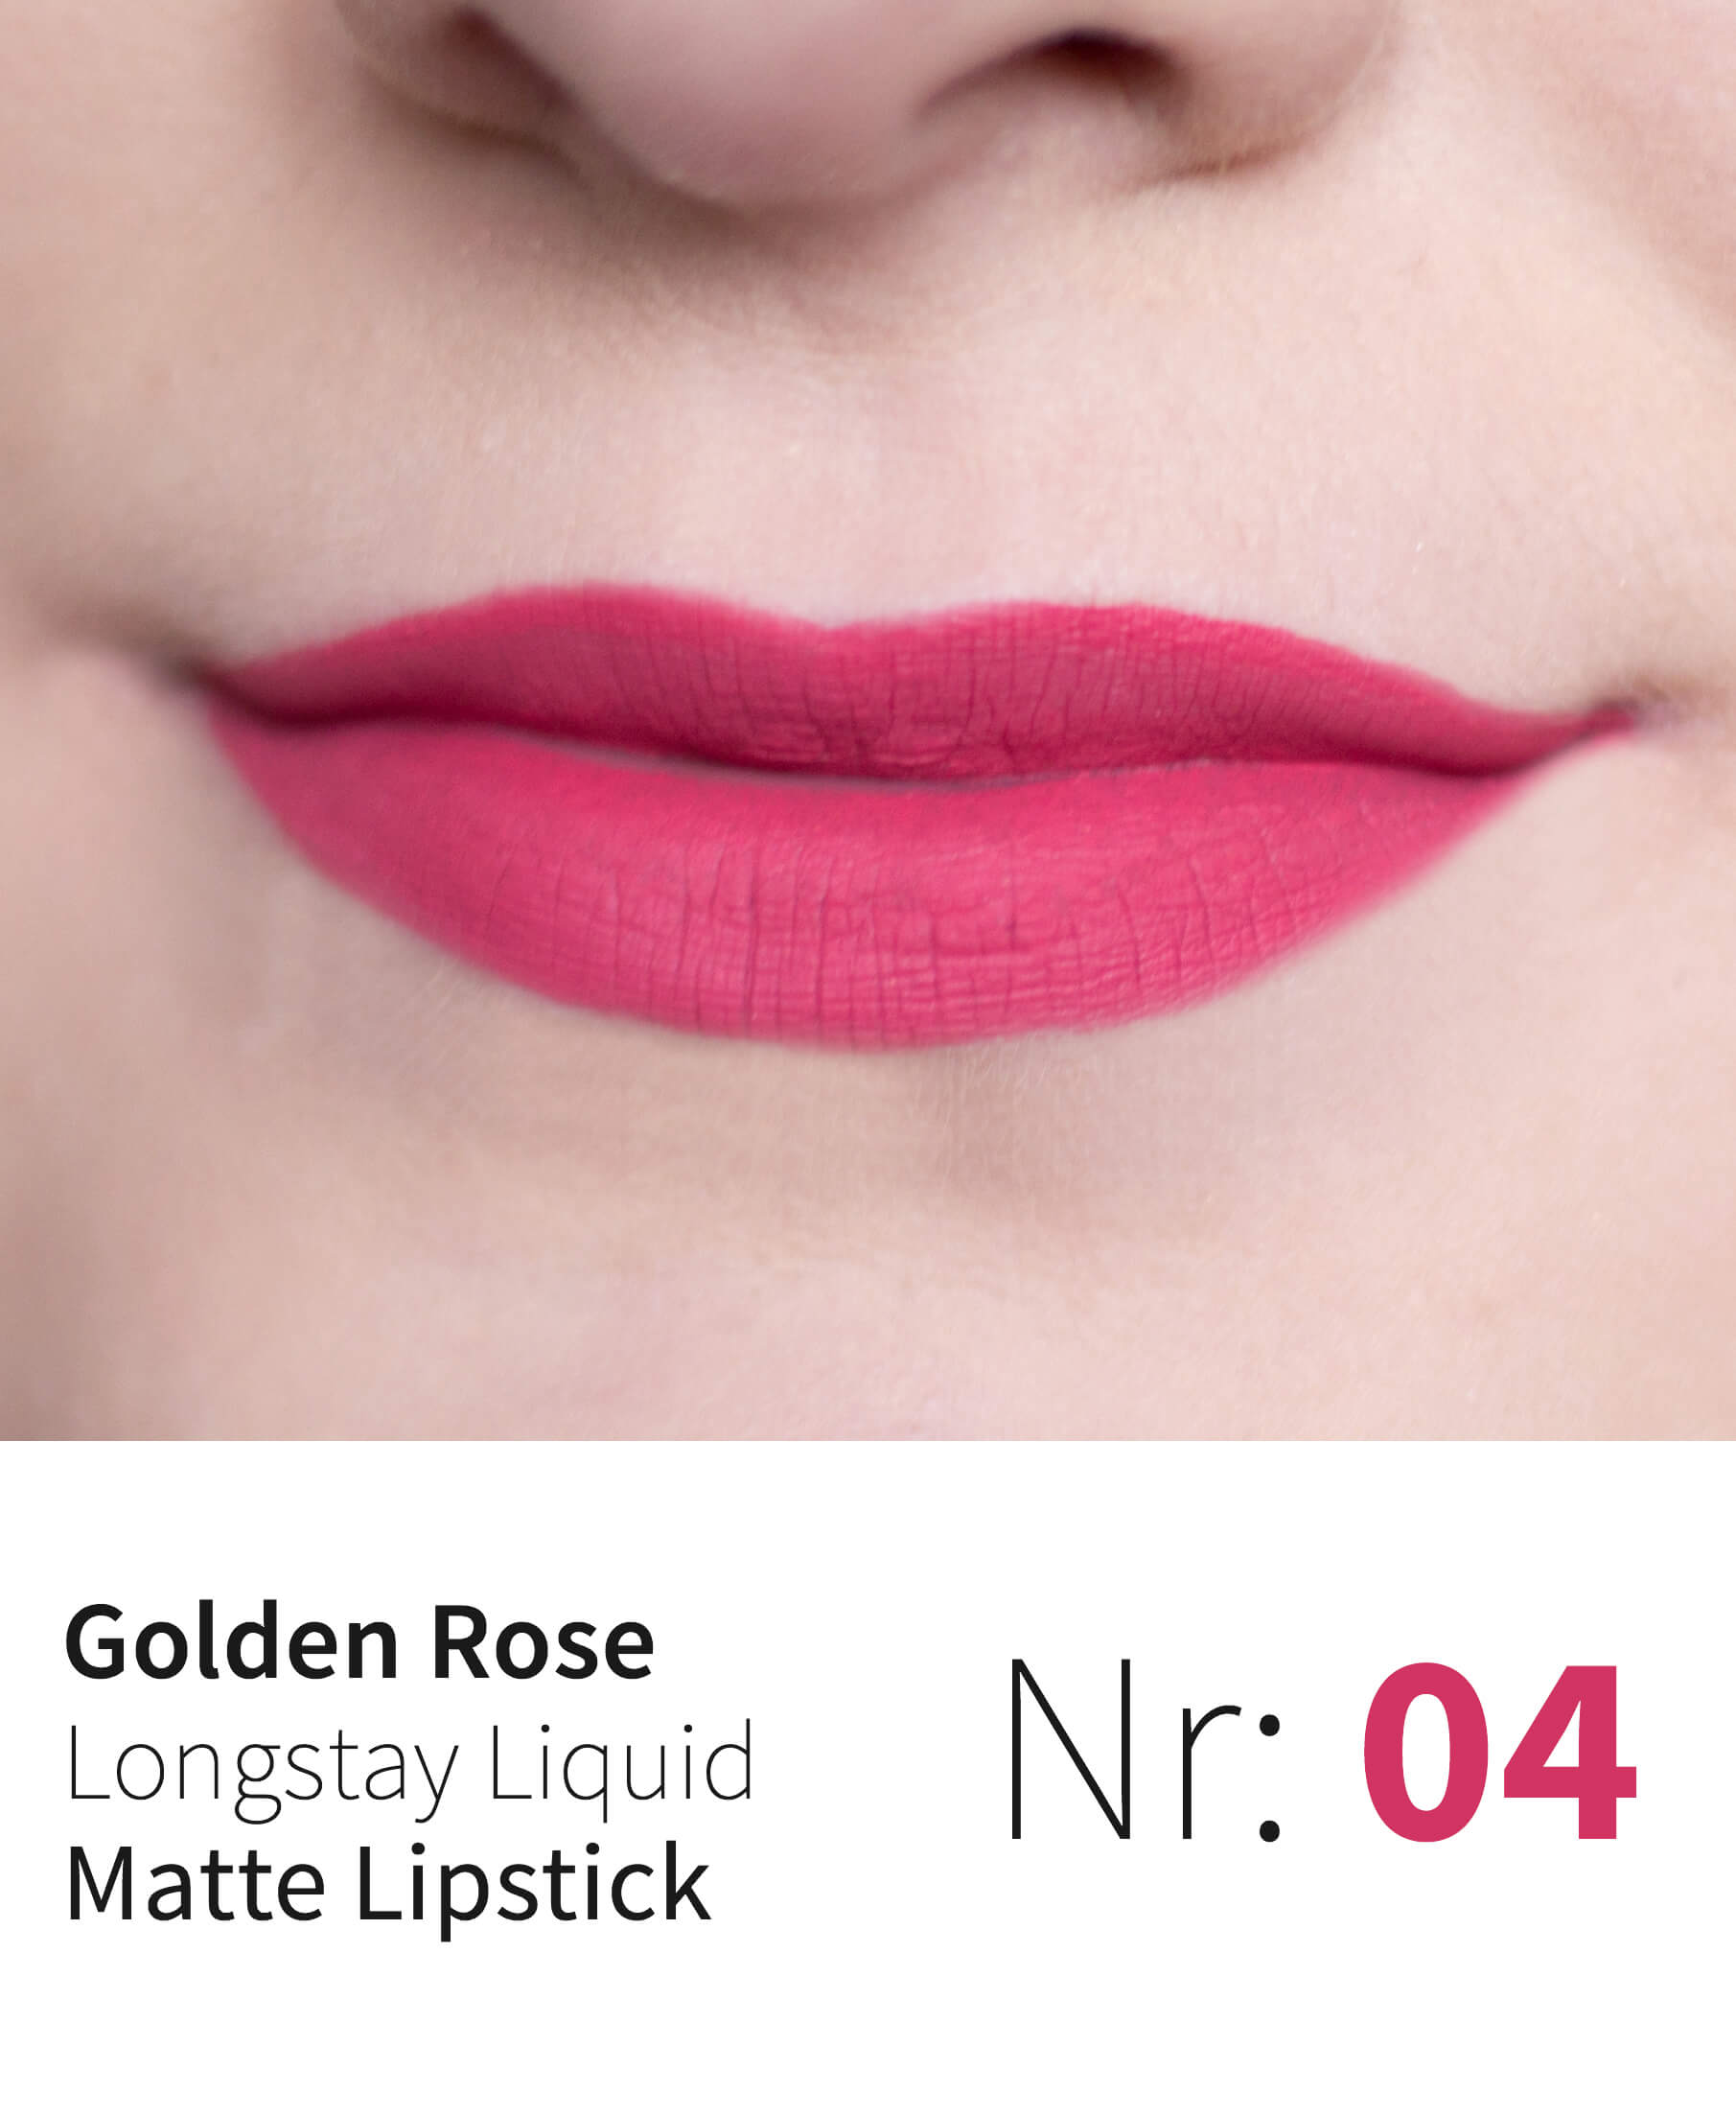 Golden Rose Longstay Liquid Matte Lipstick 04